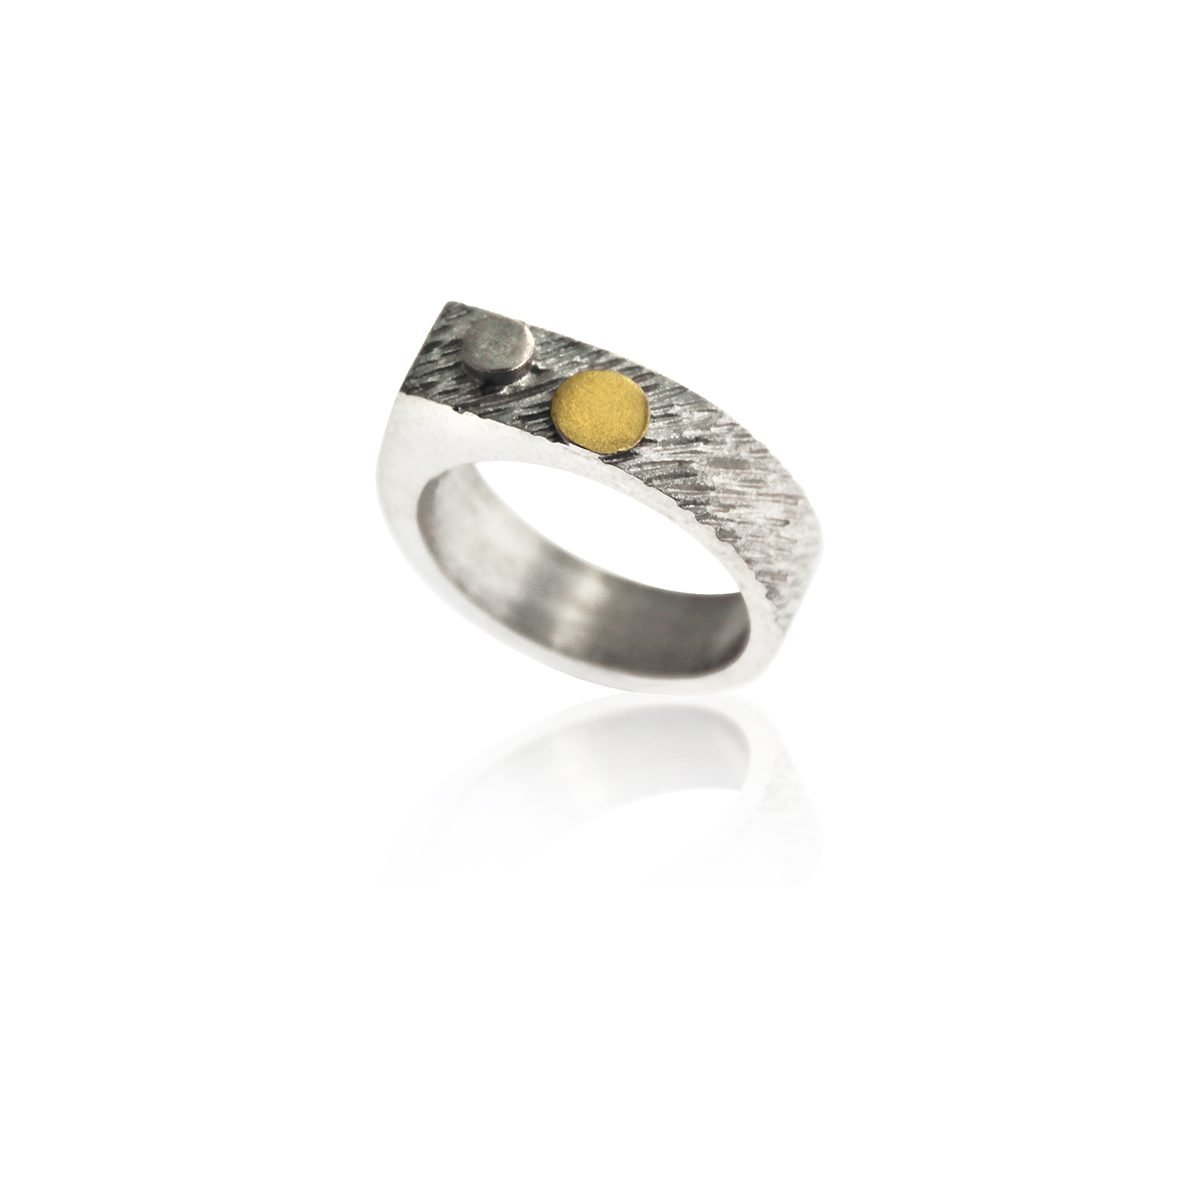 SILVER & GOLD RING. R1760